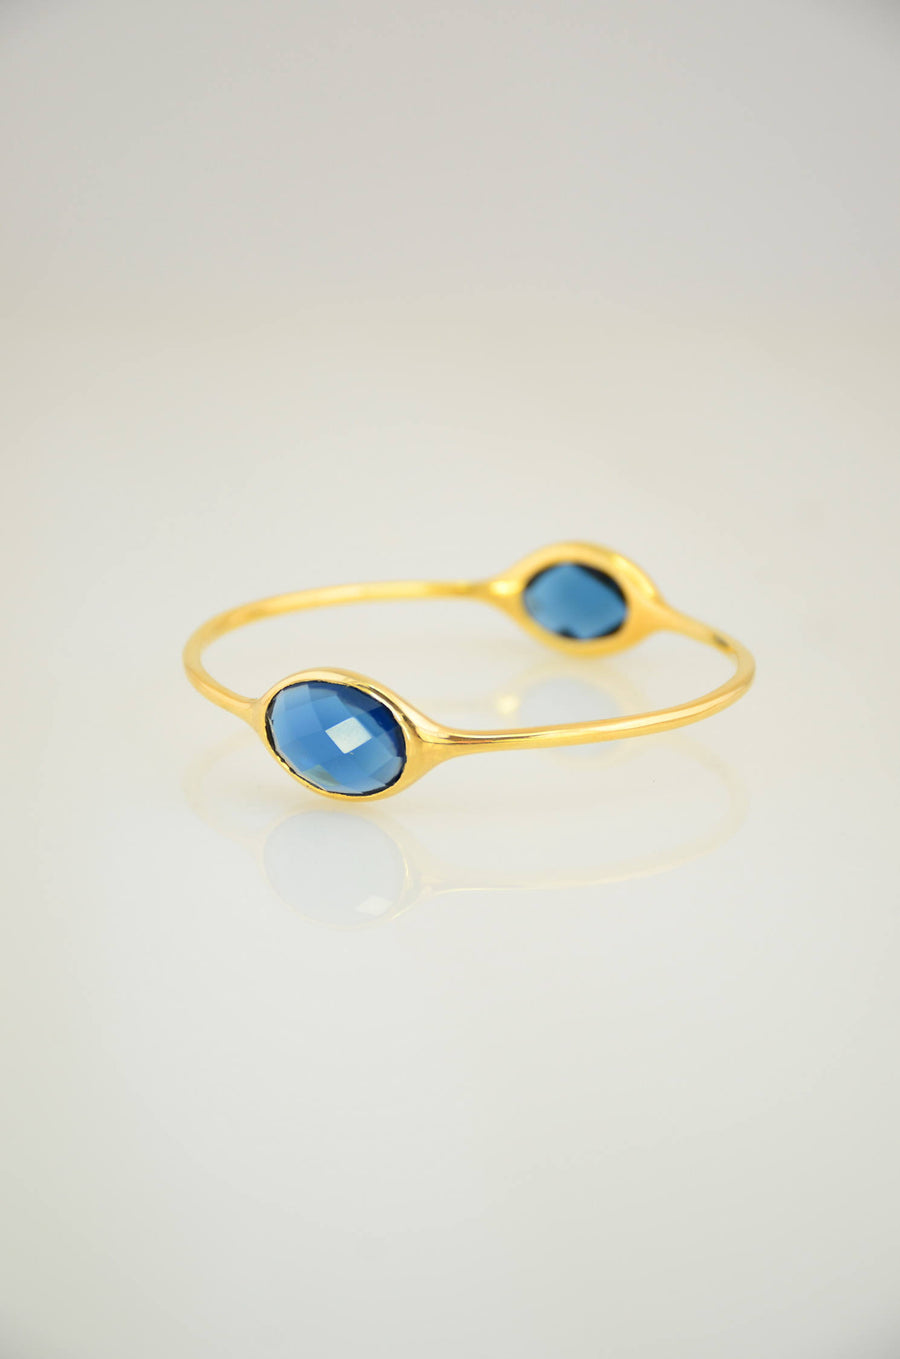 Sapphire Bangle, Gems Bangle Bracelet, Christmas Gift, Birthstone Bangle, September Birthstone, Designer Bangle, Stackable Two stone Bangles